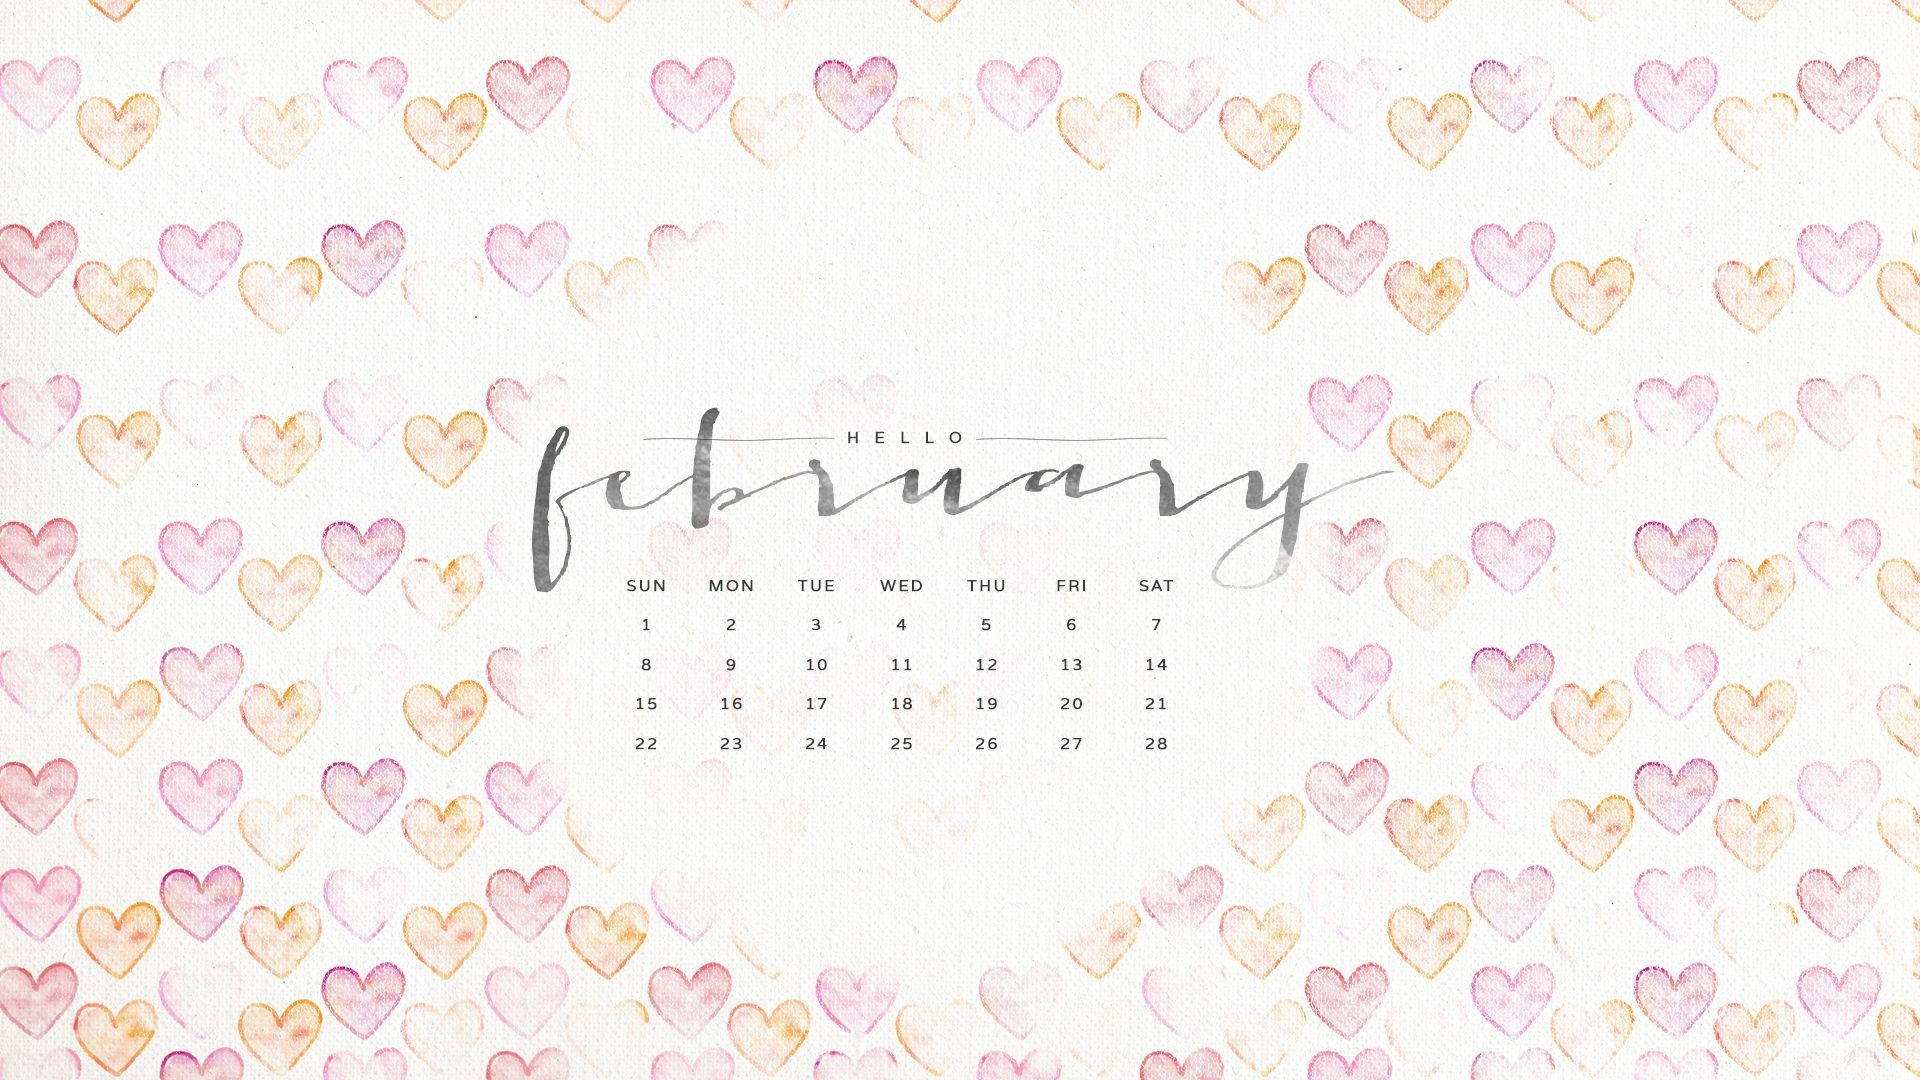 Wallpaper Calendars for 2018 61 images 1920x1080